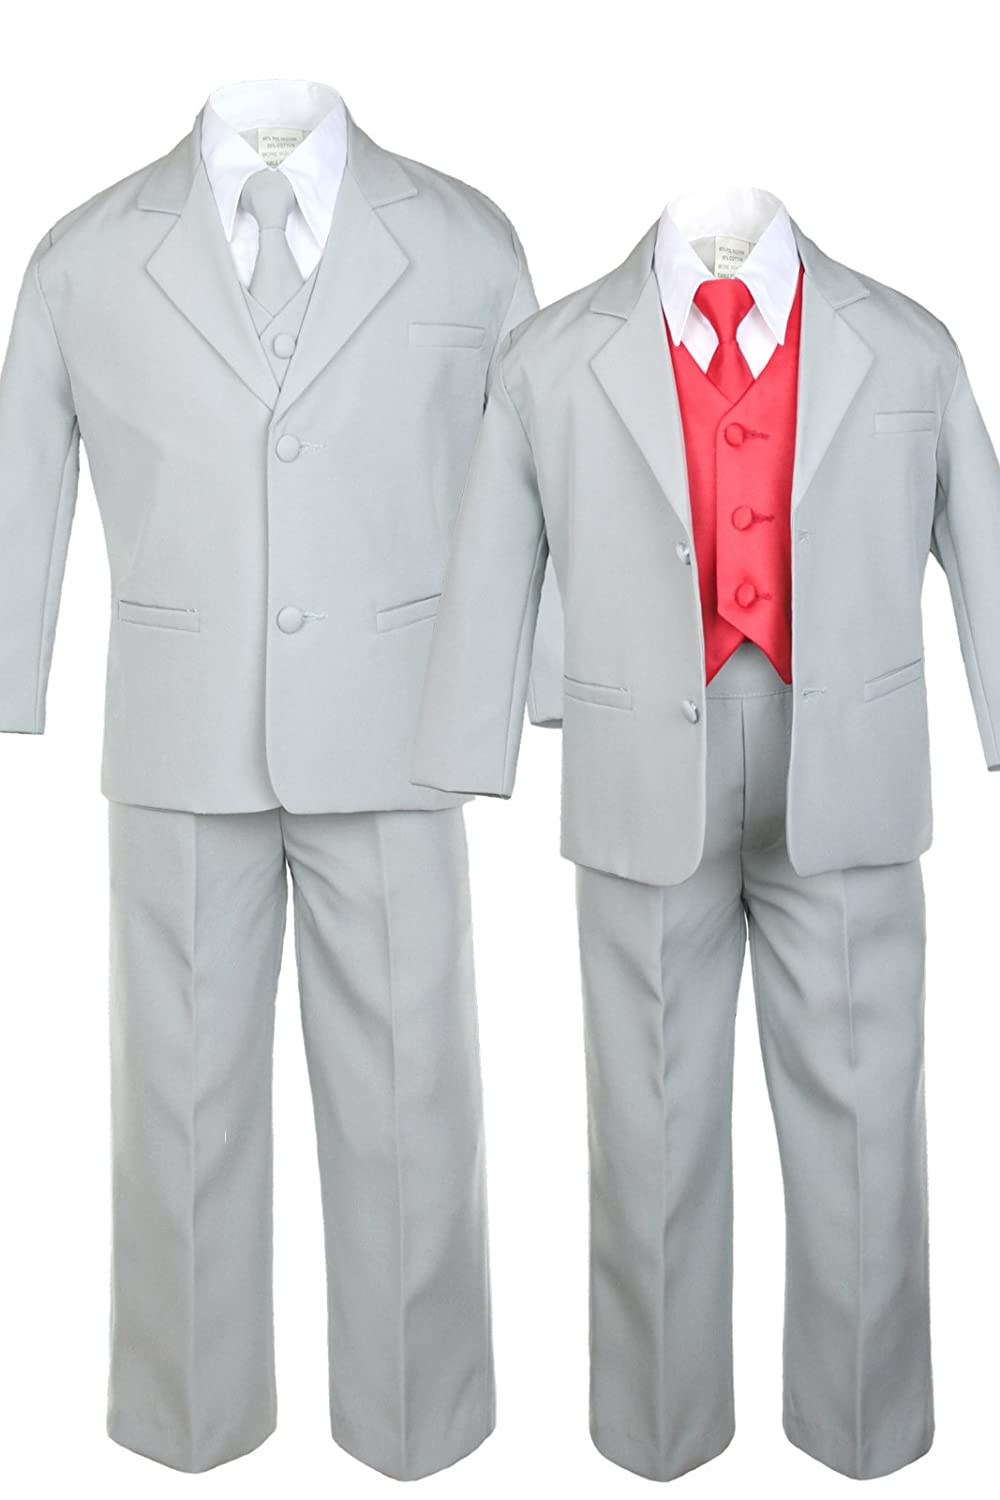 Unotux 7pc Boys Silver Suit with Satin Red Vest Set from Baby to Teen